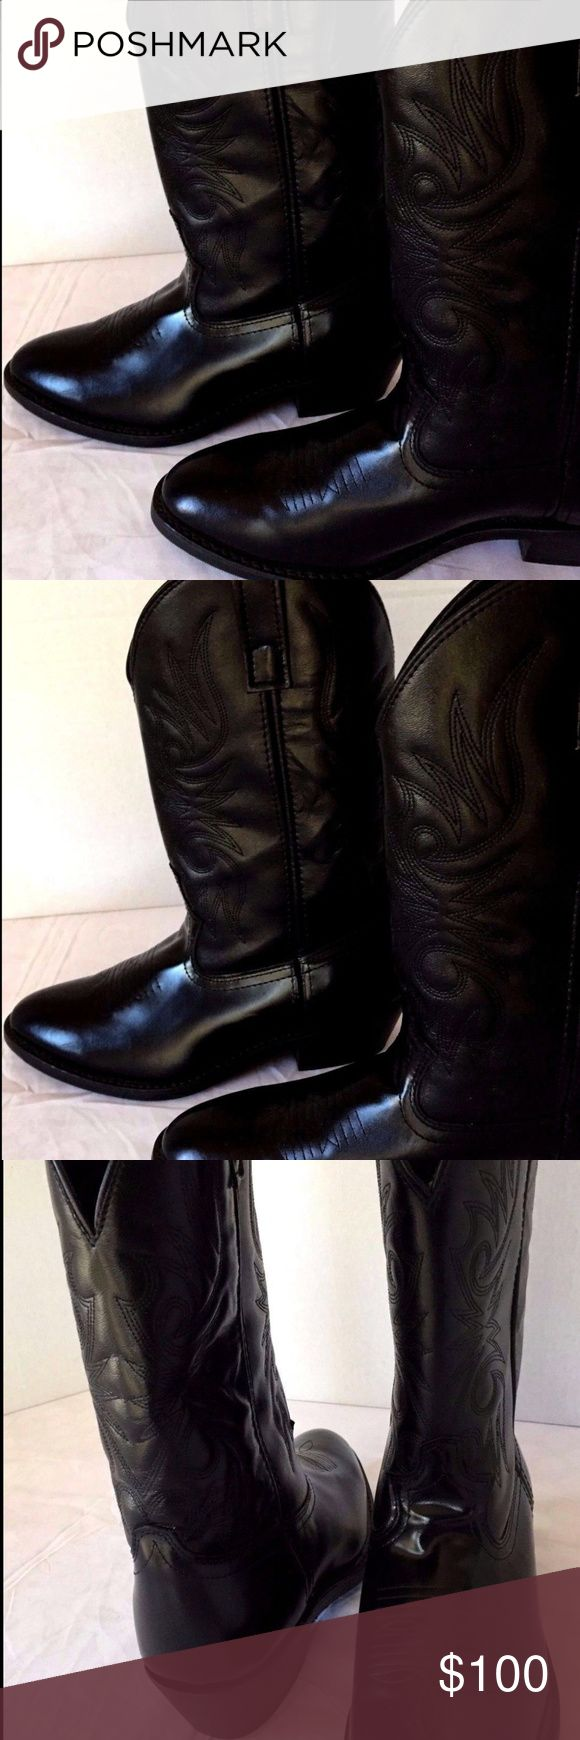 """Laredo Western Cowboy Boots 9D Excellent Condition These Laredo Paris Men's Size 9D Black Leather Cowboy Boots Style #4240 are a Classic Western Boot ~ Durable and long-wearing ~ 12-inch height ~ These boots are Traditional Western Cowboy Boots ~ Round Toe with a Cowboy heel ~  Oil and Chemical Resistant ~ In Excellent Condition as they have only been Worn Two or Three Times Black Leather Foot * Black Leather-Like Top * 12"""" in Height * Hinged Cushion Insole * Round Toe * Cowboy Heel * Heavy…"""